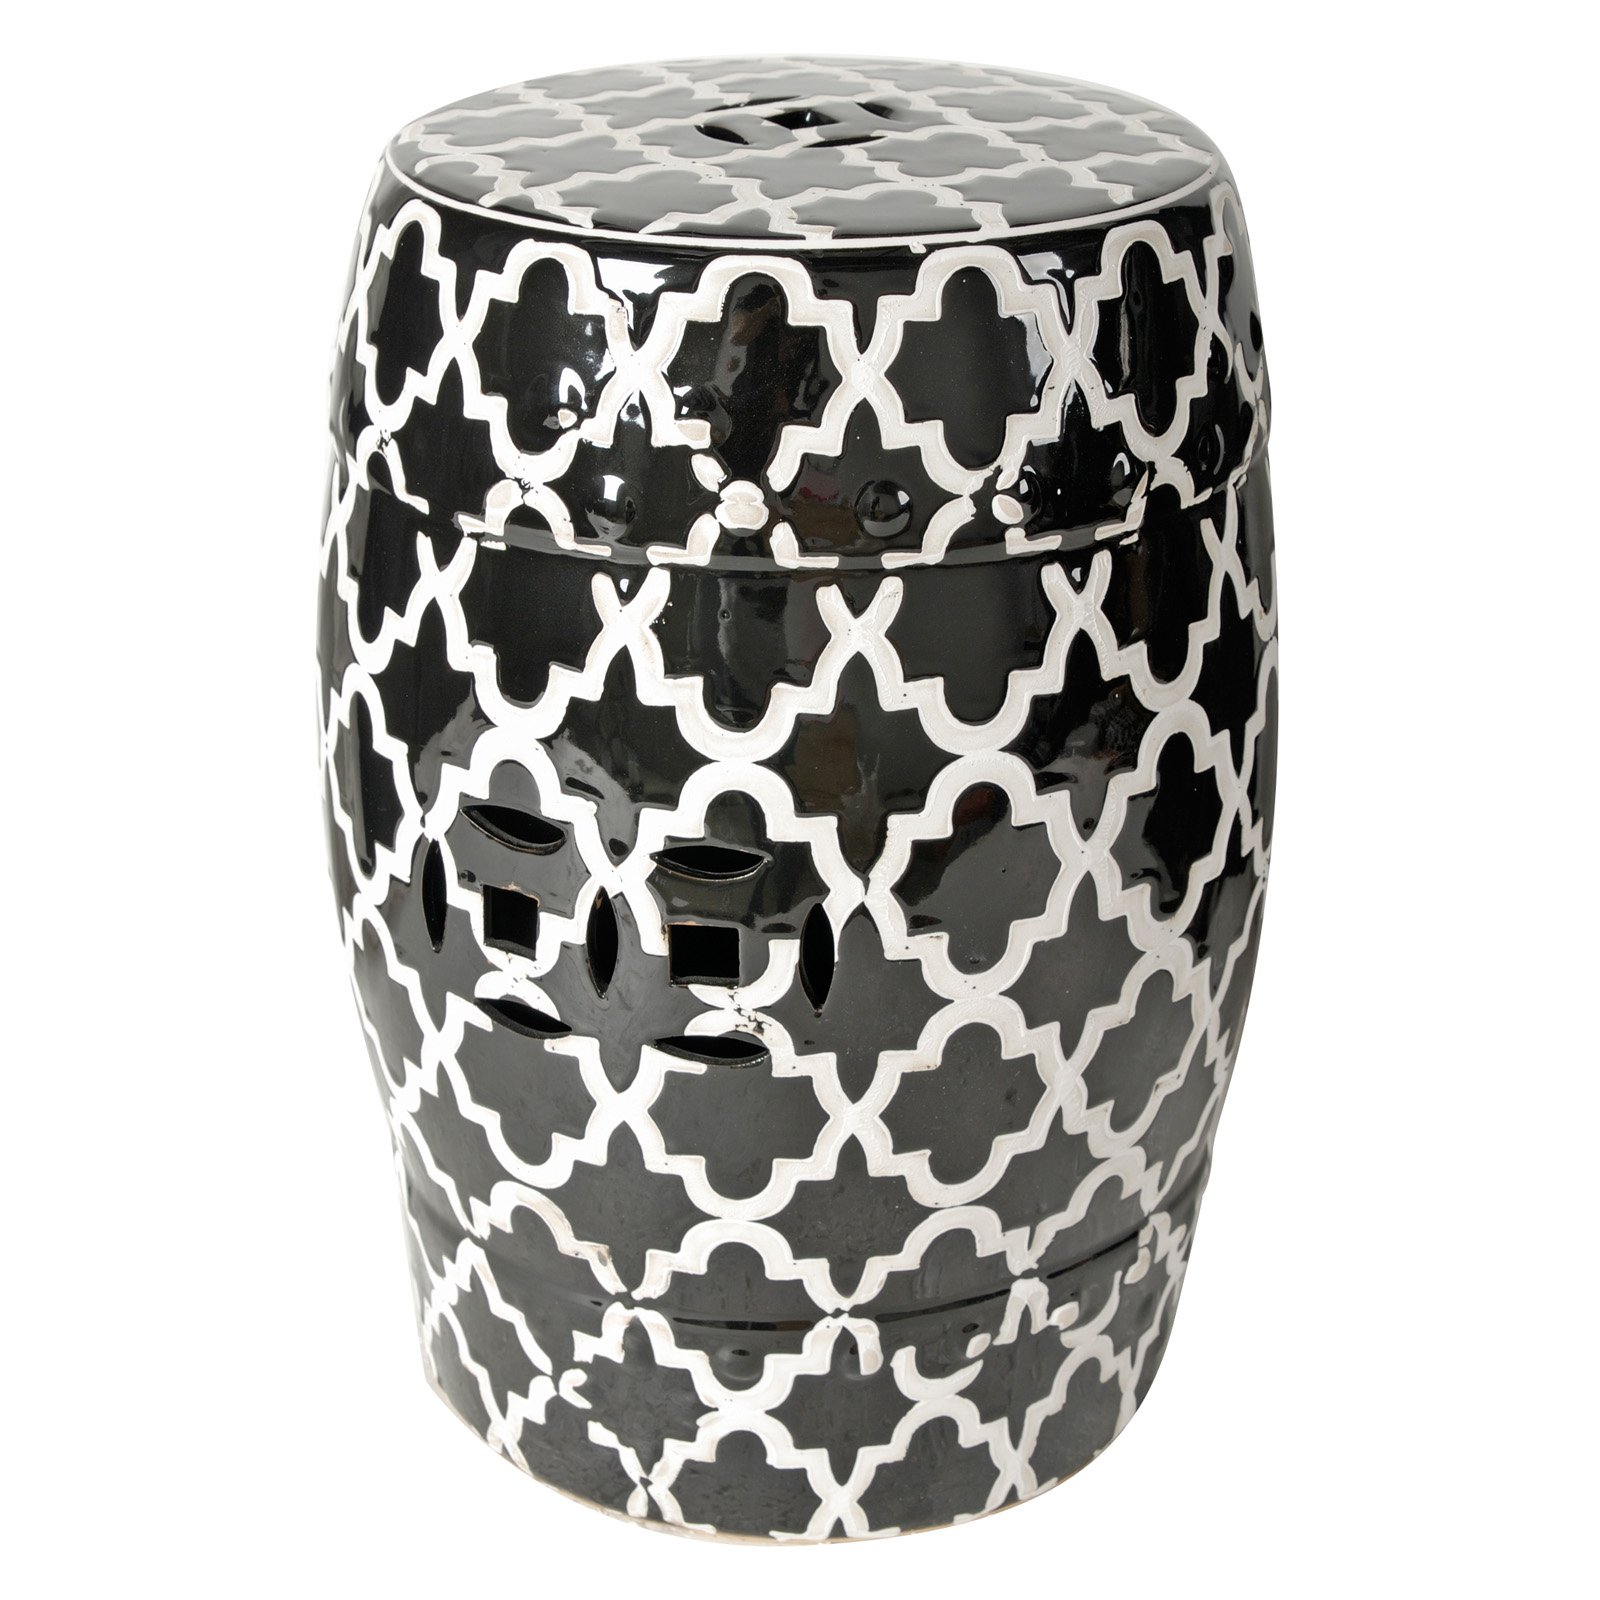 Image of Finley Indoor/Outdoor Patterned Stool